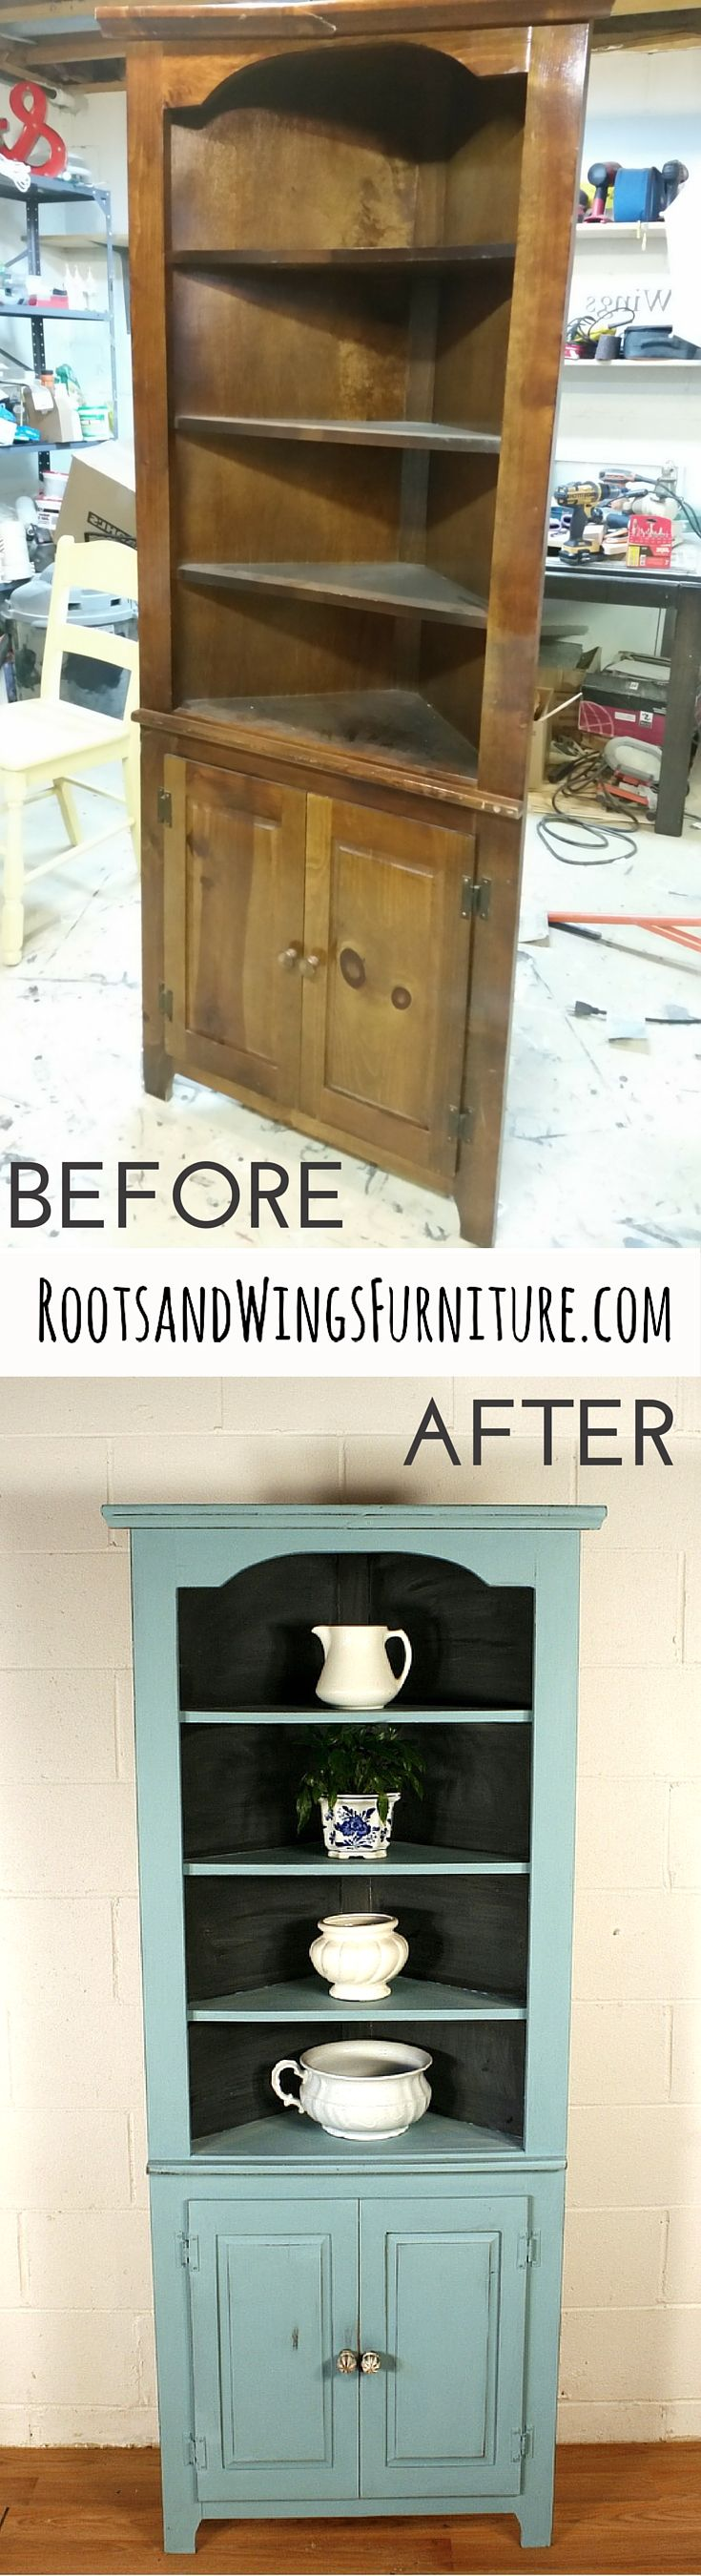 Before And After Of A Corner Hutch Refinished In Provence Chalk Paint And  Sealed With Flat Out Flat Topcoat. Back Painted In Chalkboard Paint.